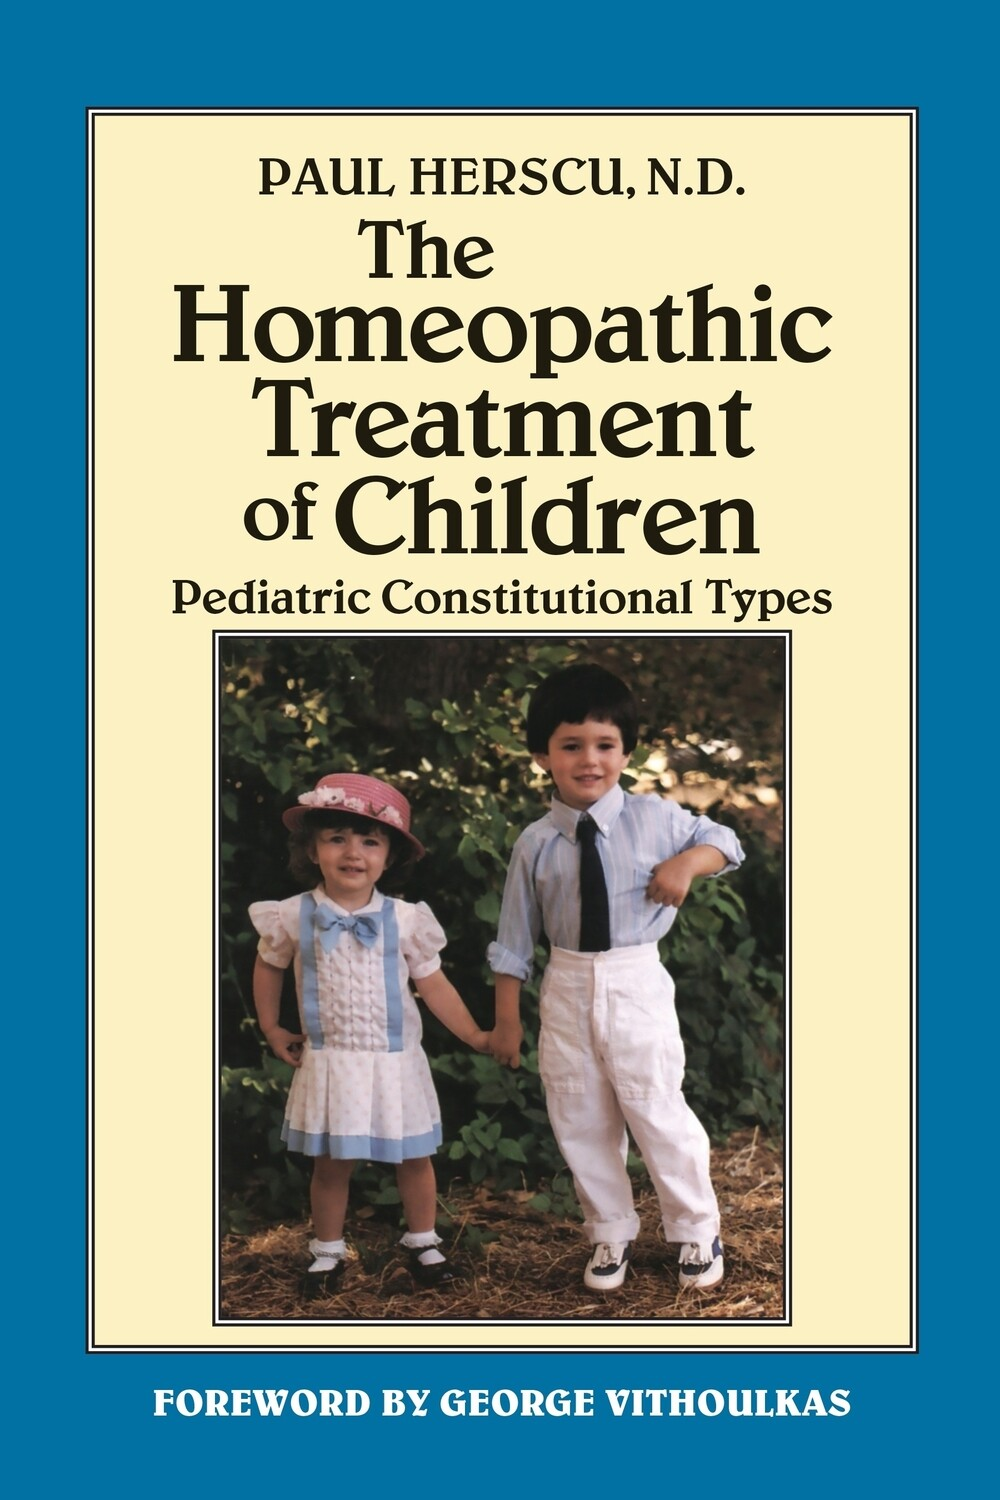 The homeopathic treatment of children*